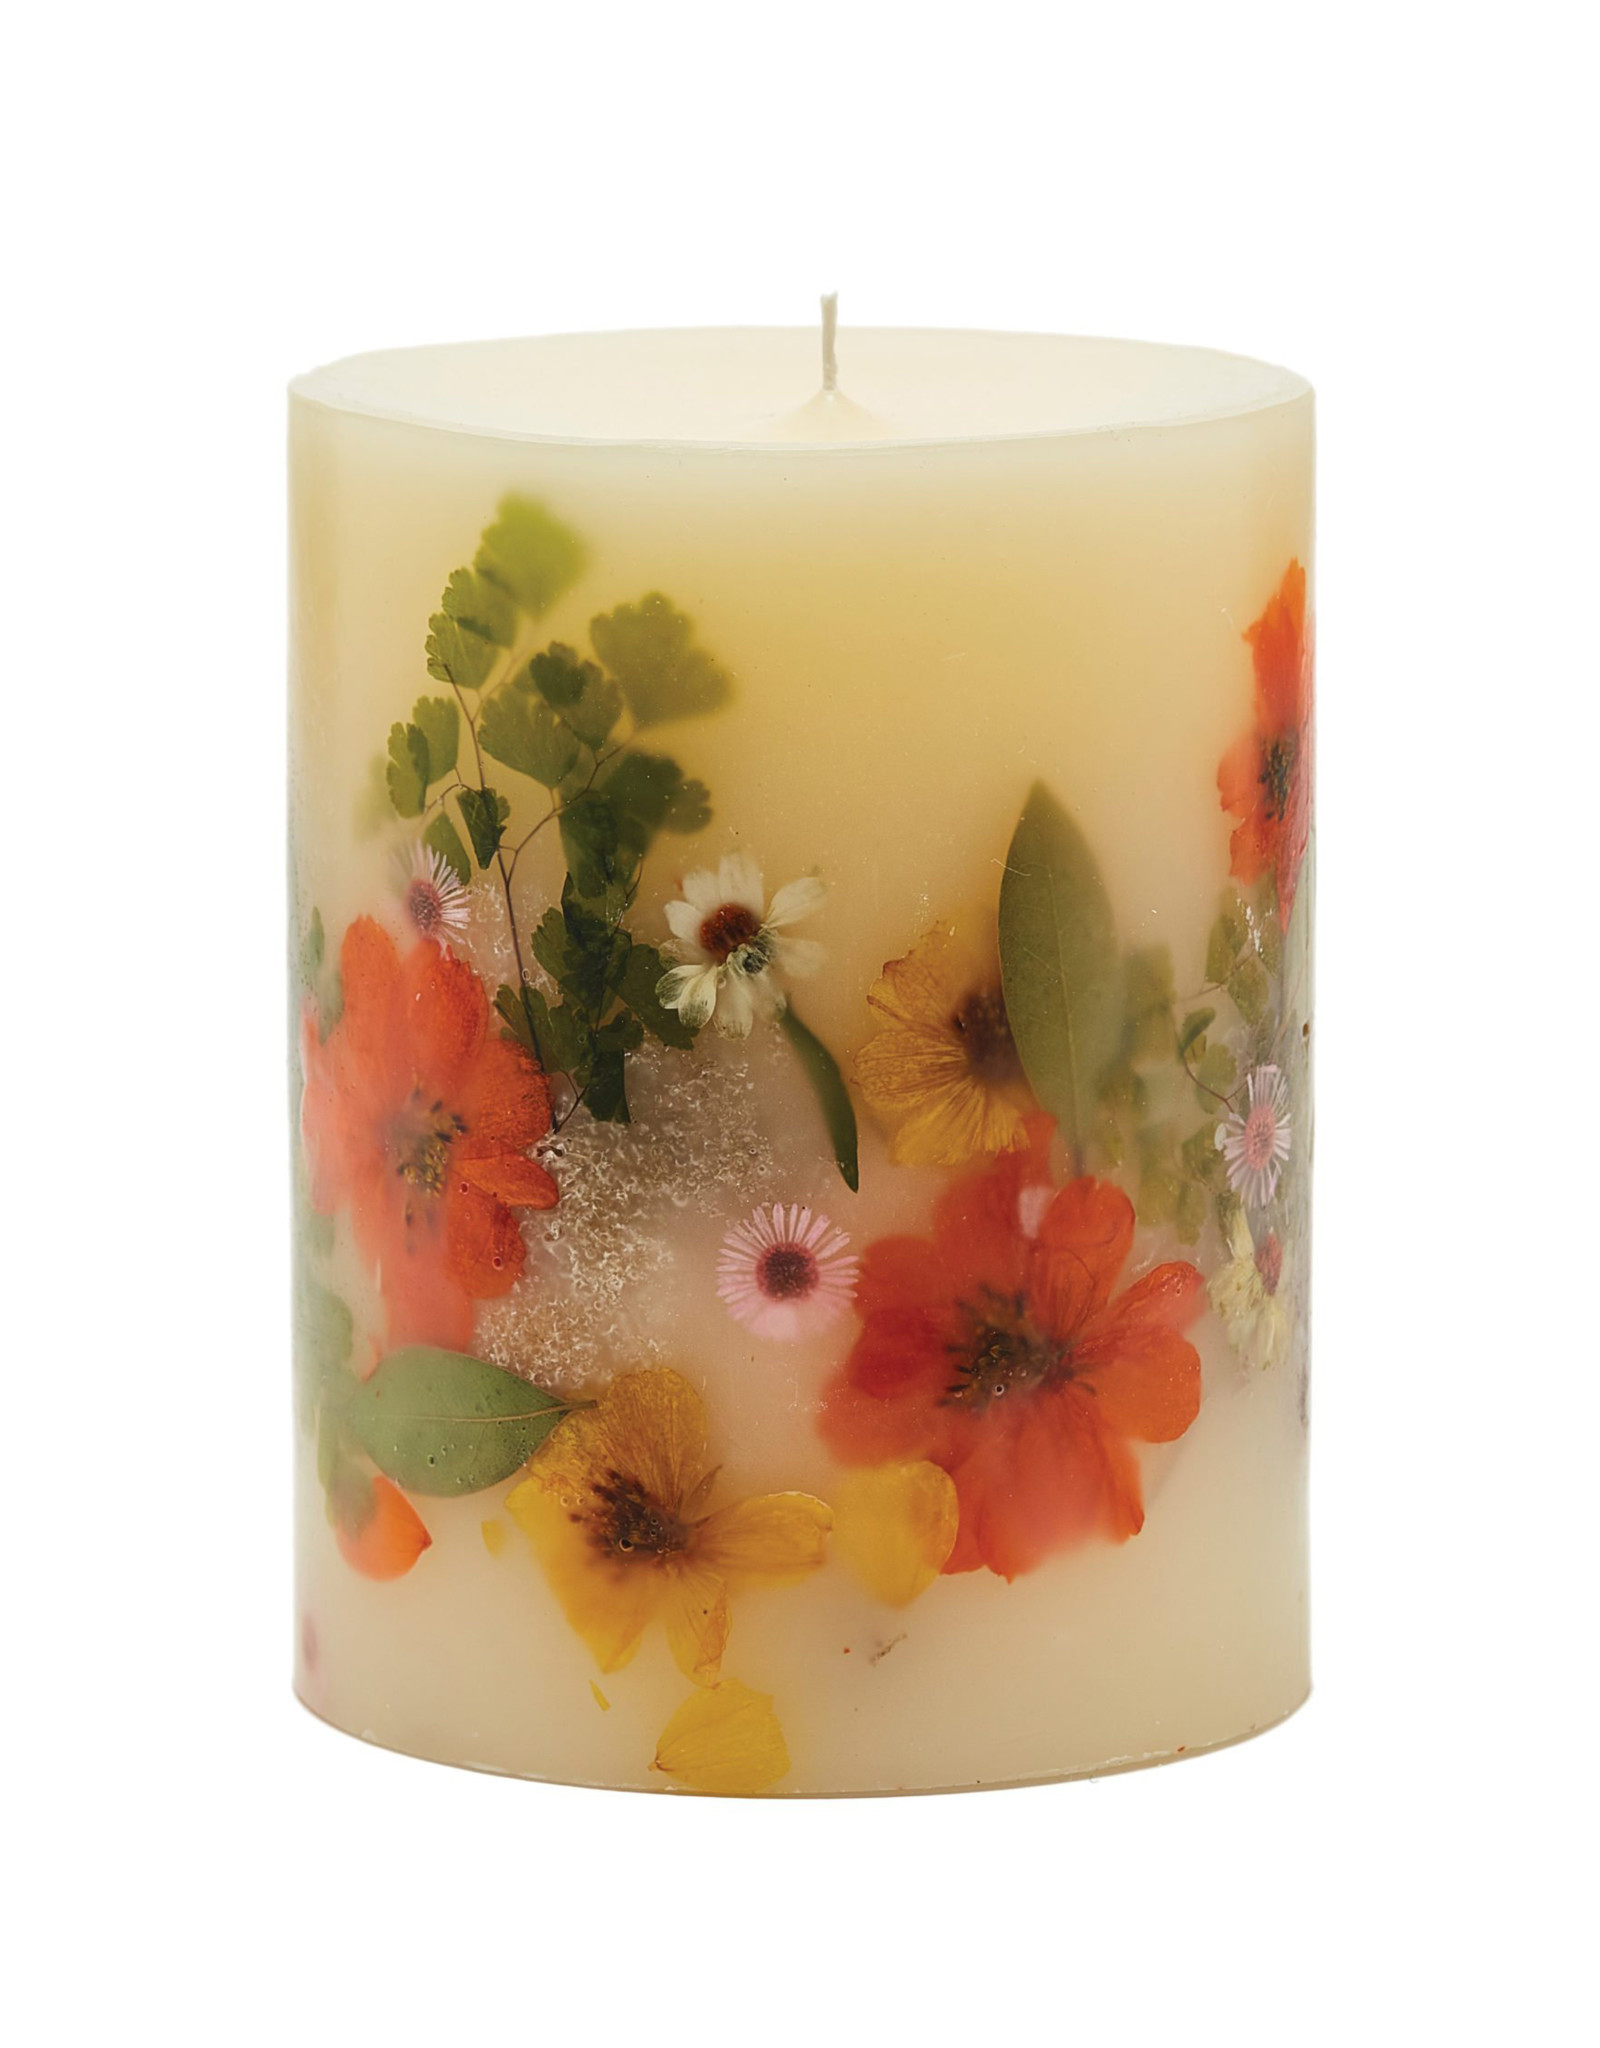 ROSY RINGS PEONY & POMELO MEDIUM ROUND BOTANICAL CANDLE